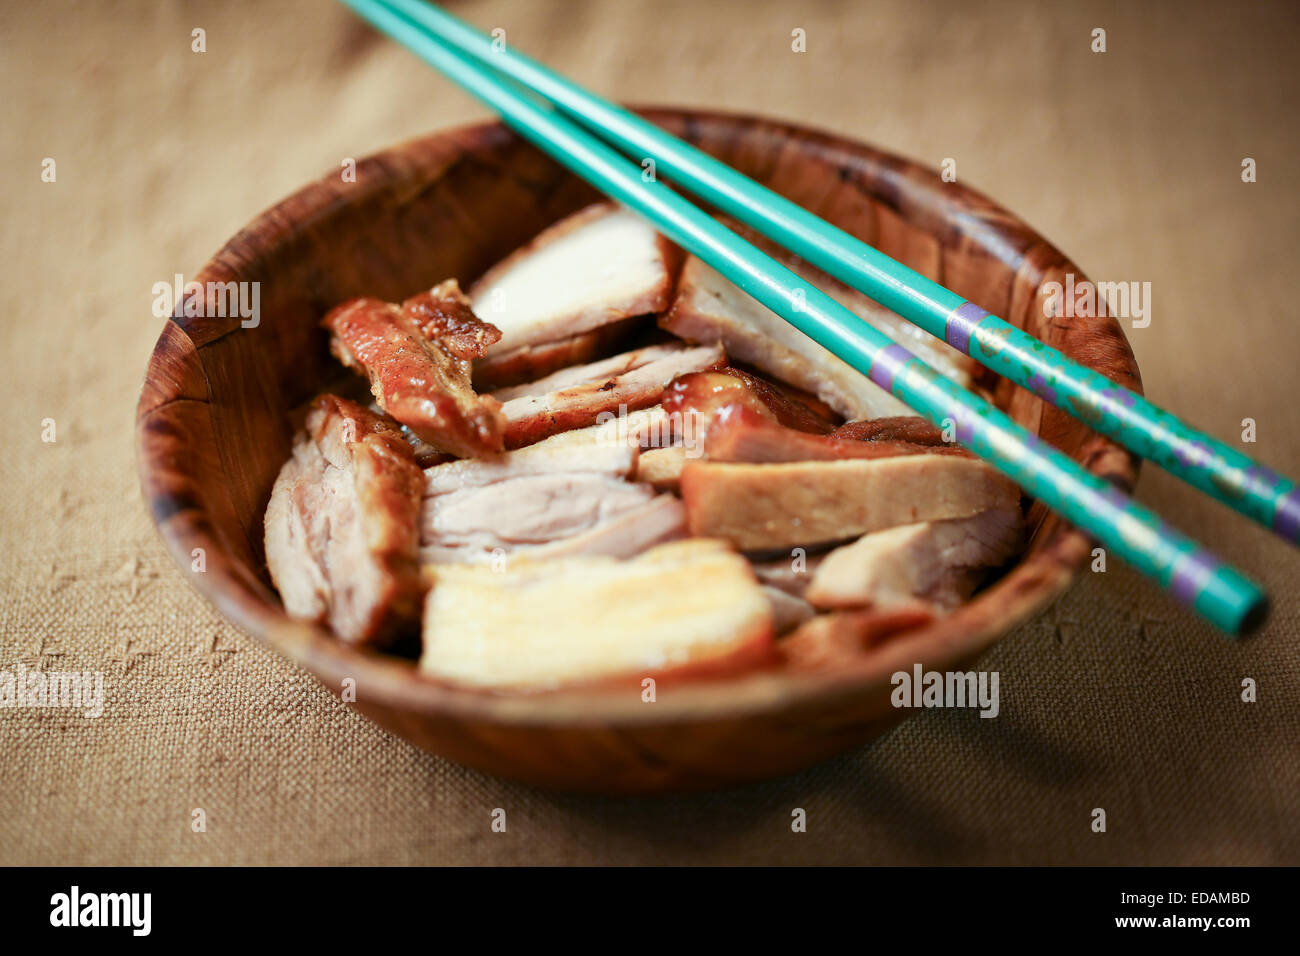 Chinese fry pork chops into small pieces and served with chopsticks